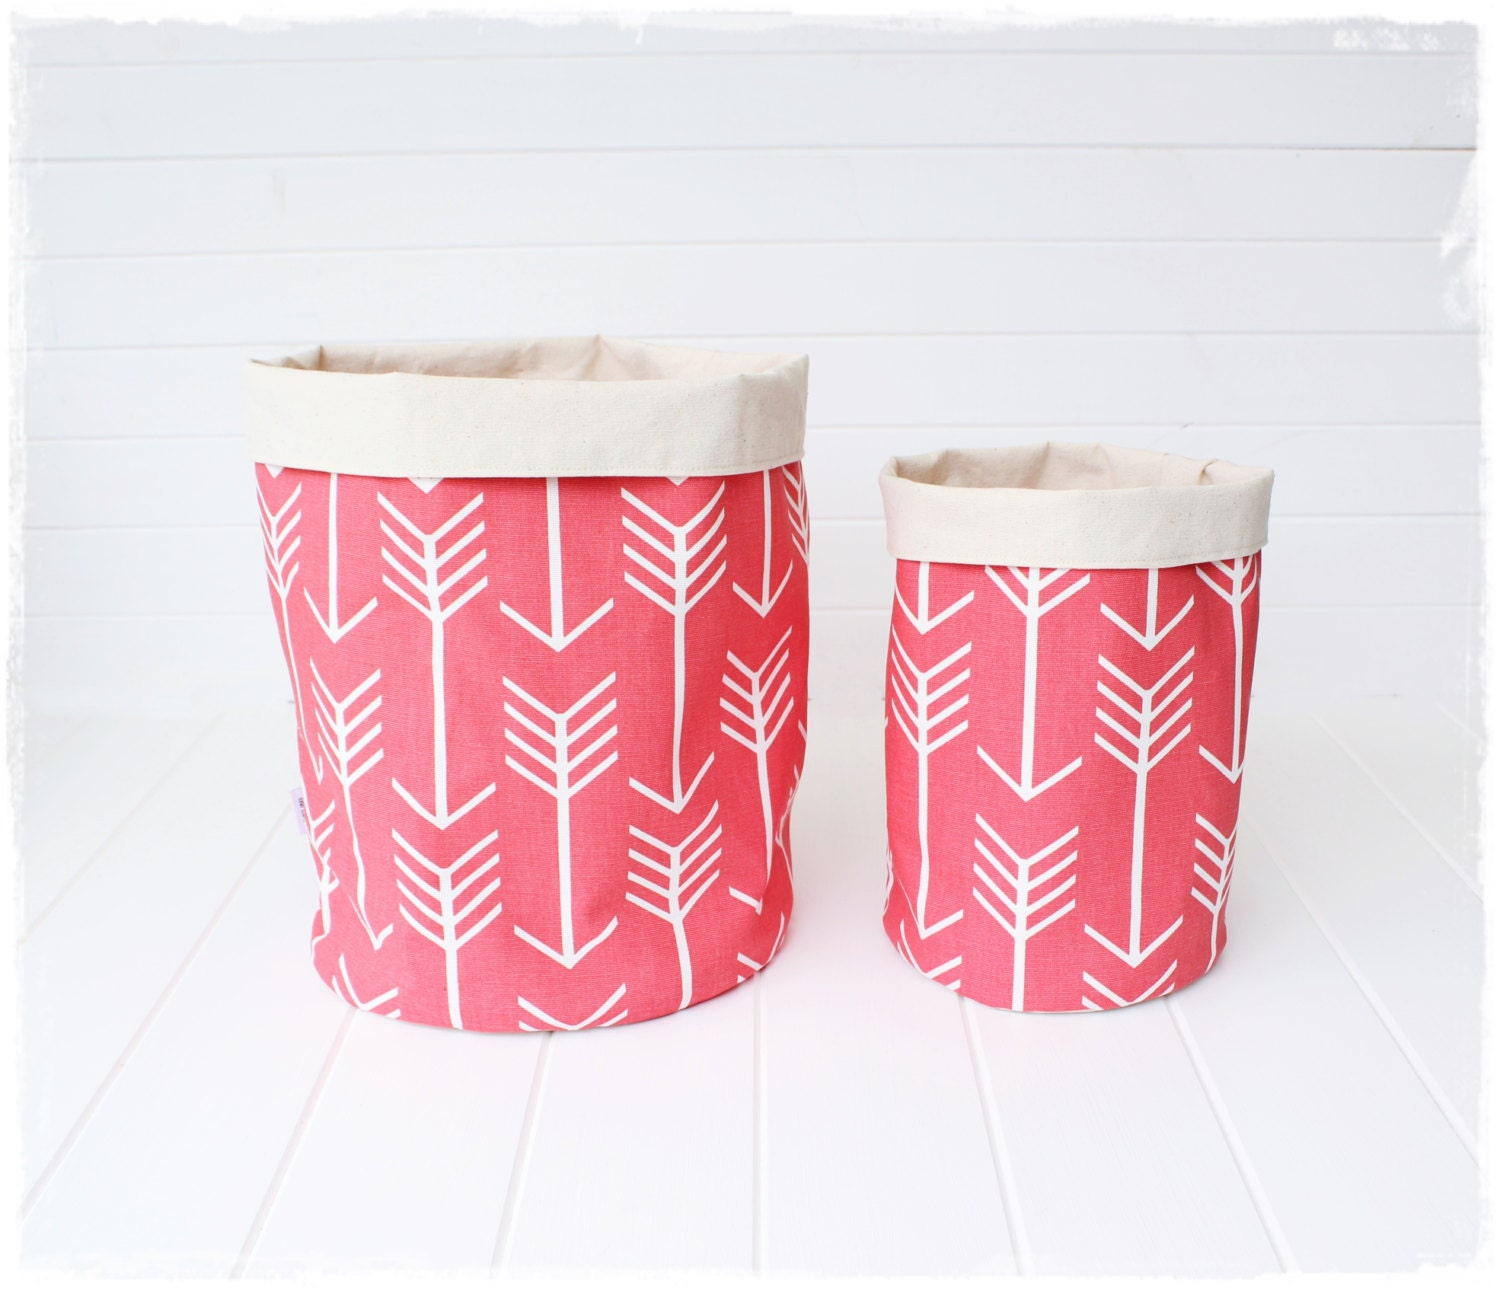 Handmade Fabric Storage Baskets : Coral arrows fabric storage baskets